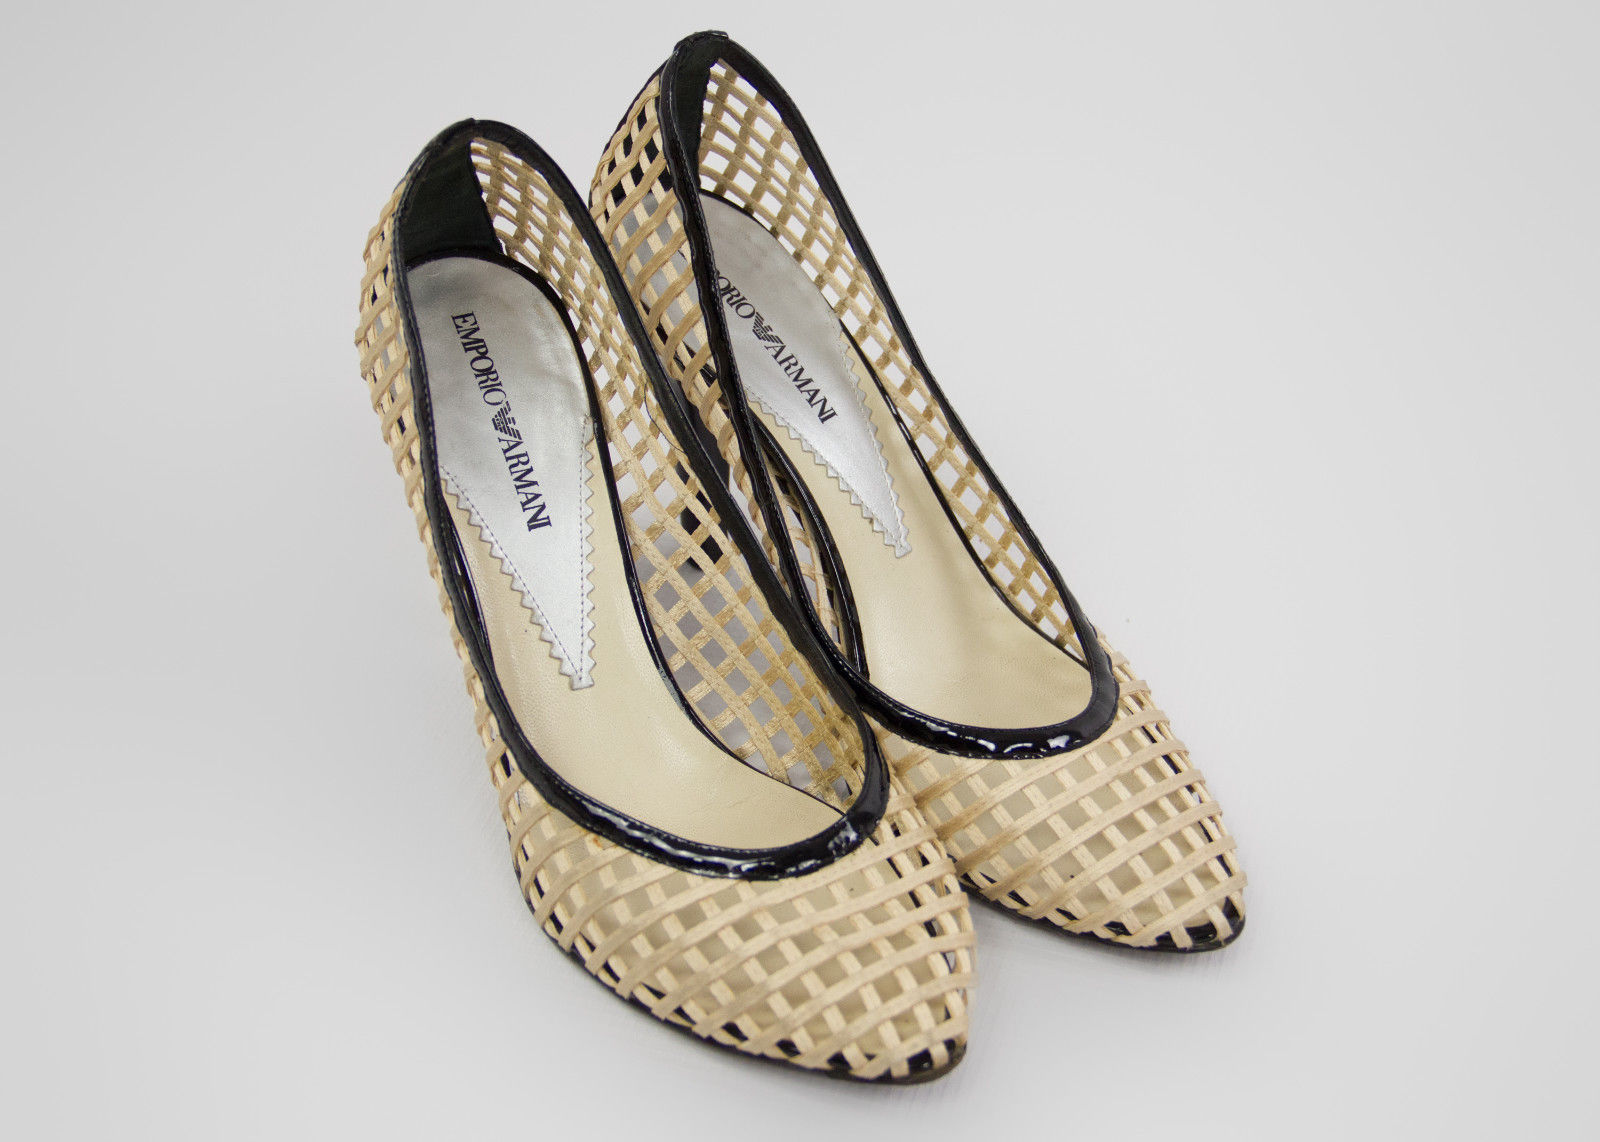 EMPORIO ARMANI Beige Silk Satin Basket Weave Woven Pumps US 7.5 - secondfirst